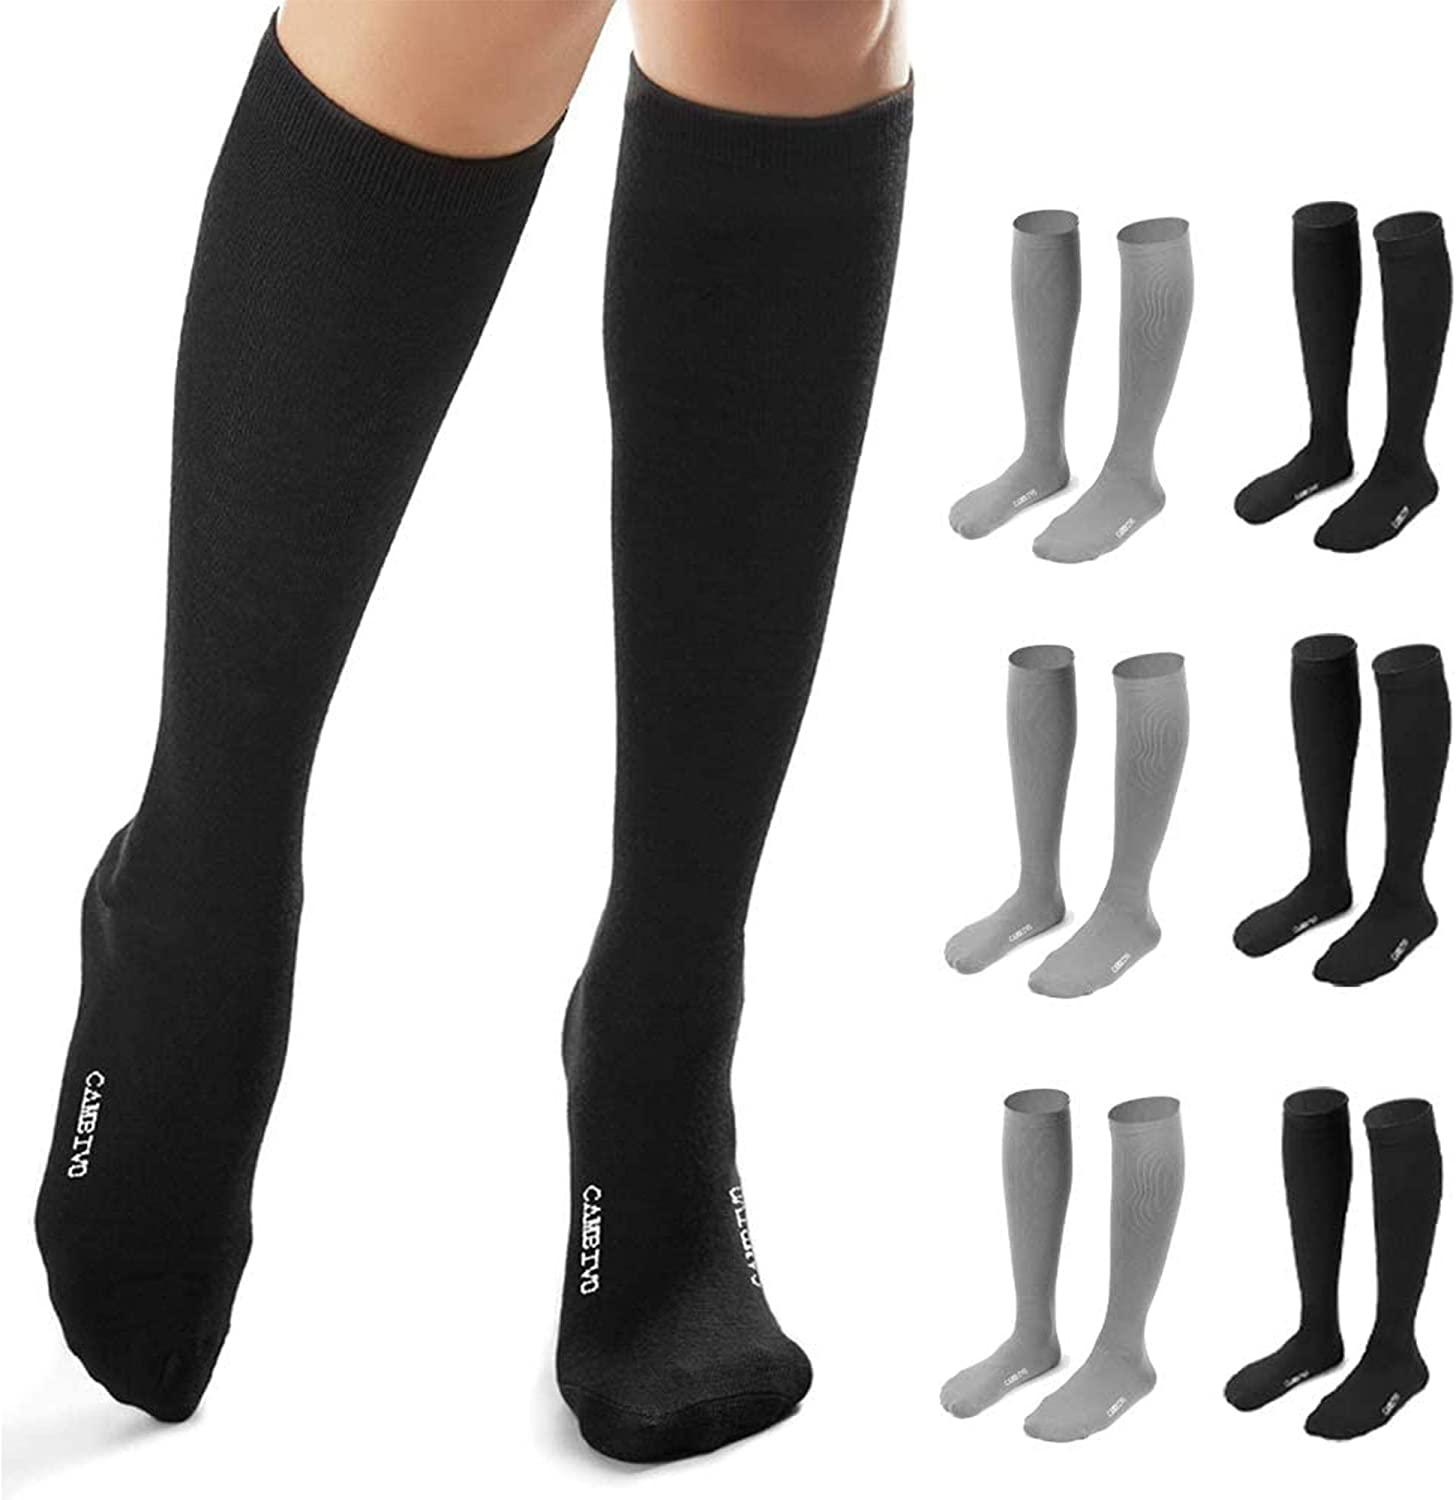 CAMBIVO 6 Pairs Compression Socks for Women and Men, Compression Stocking for Travel, Nursing, Pregnancy (15-20 mmHg)